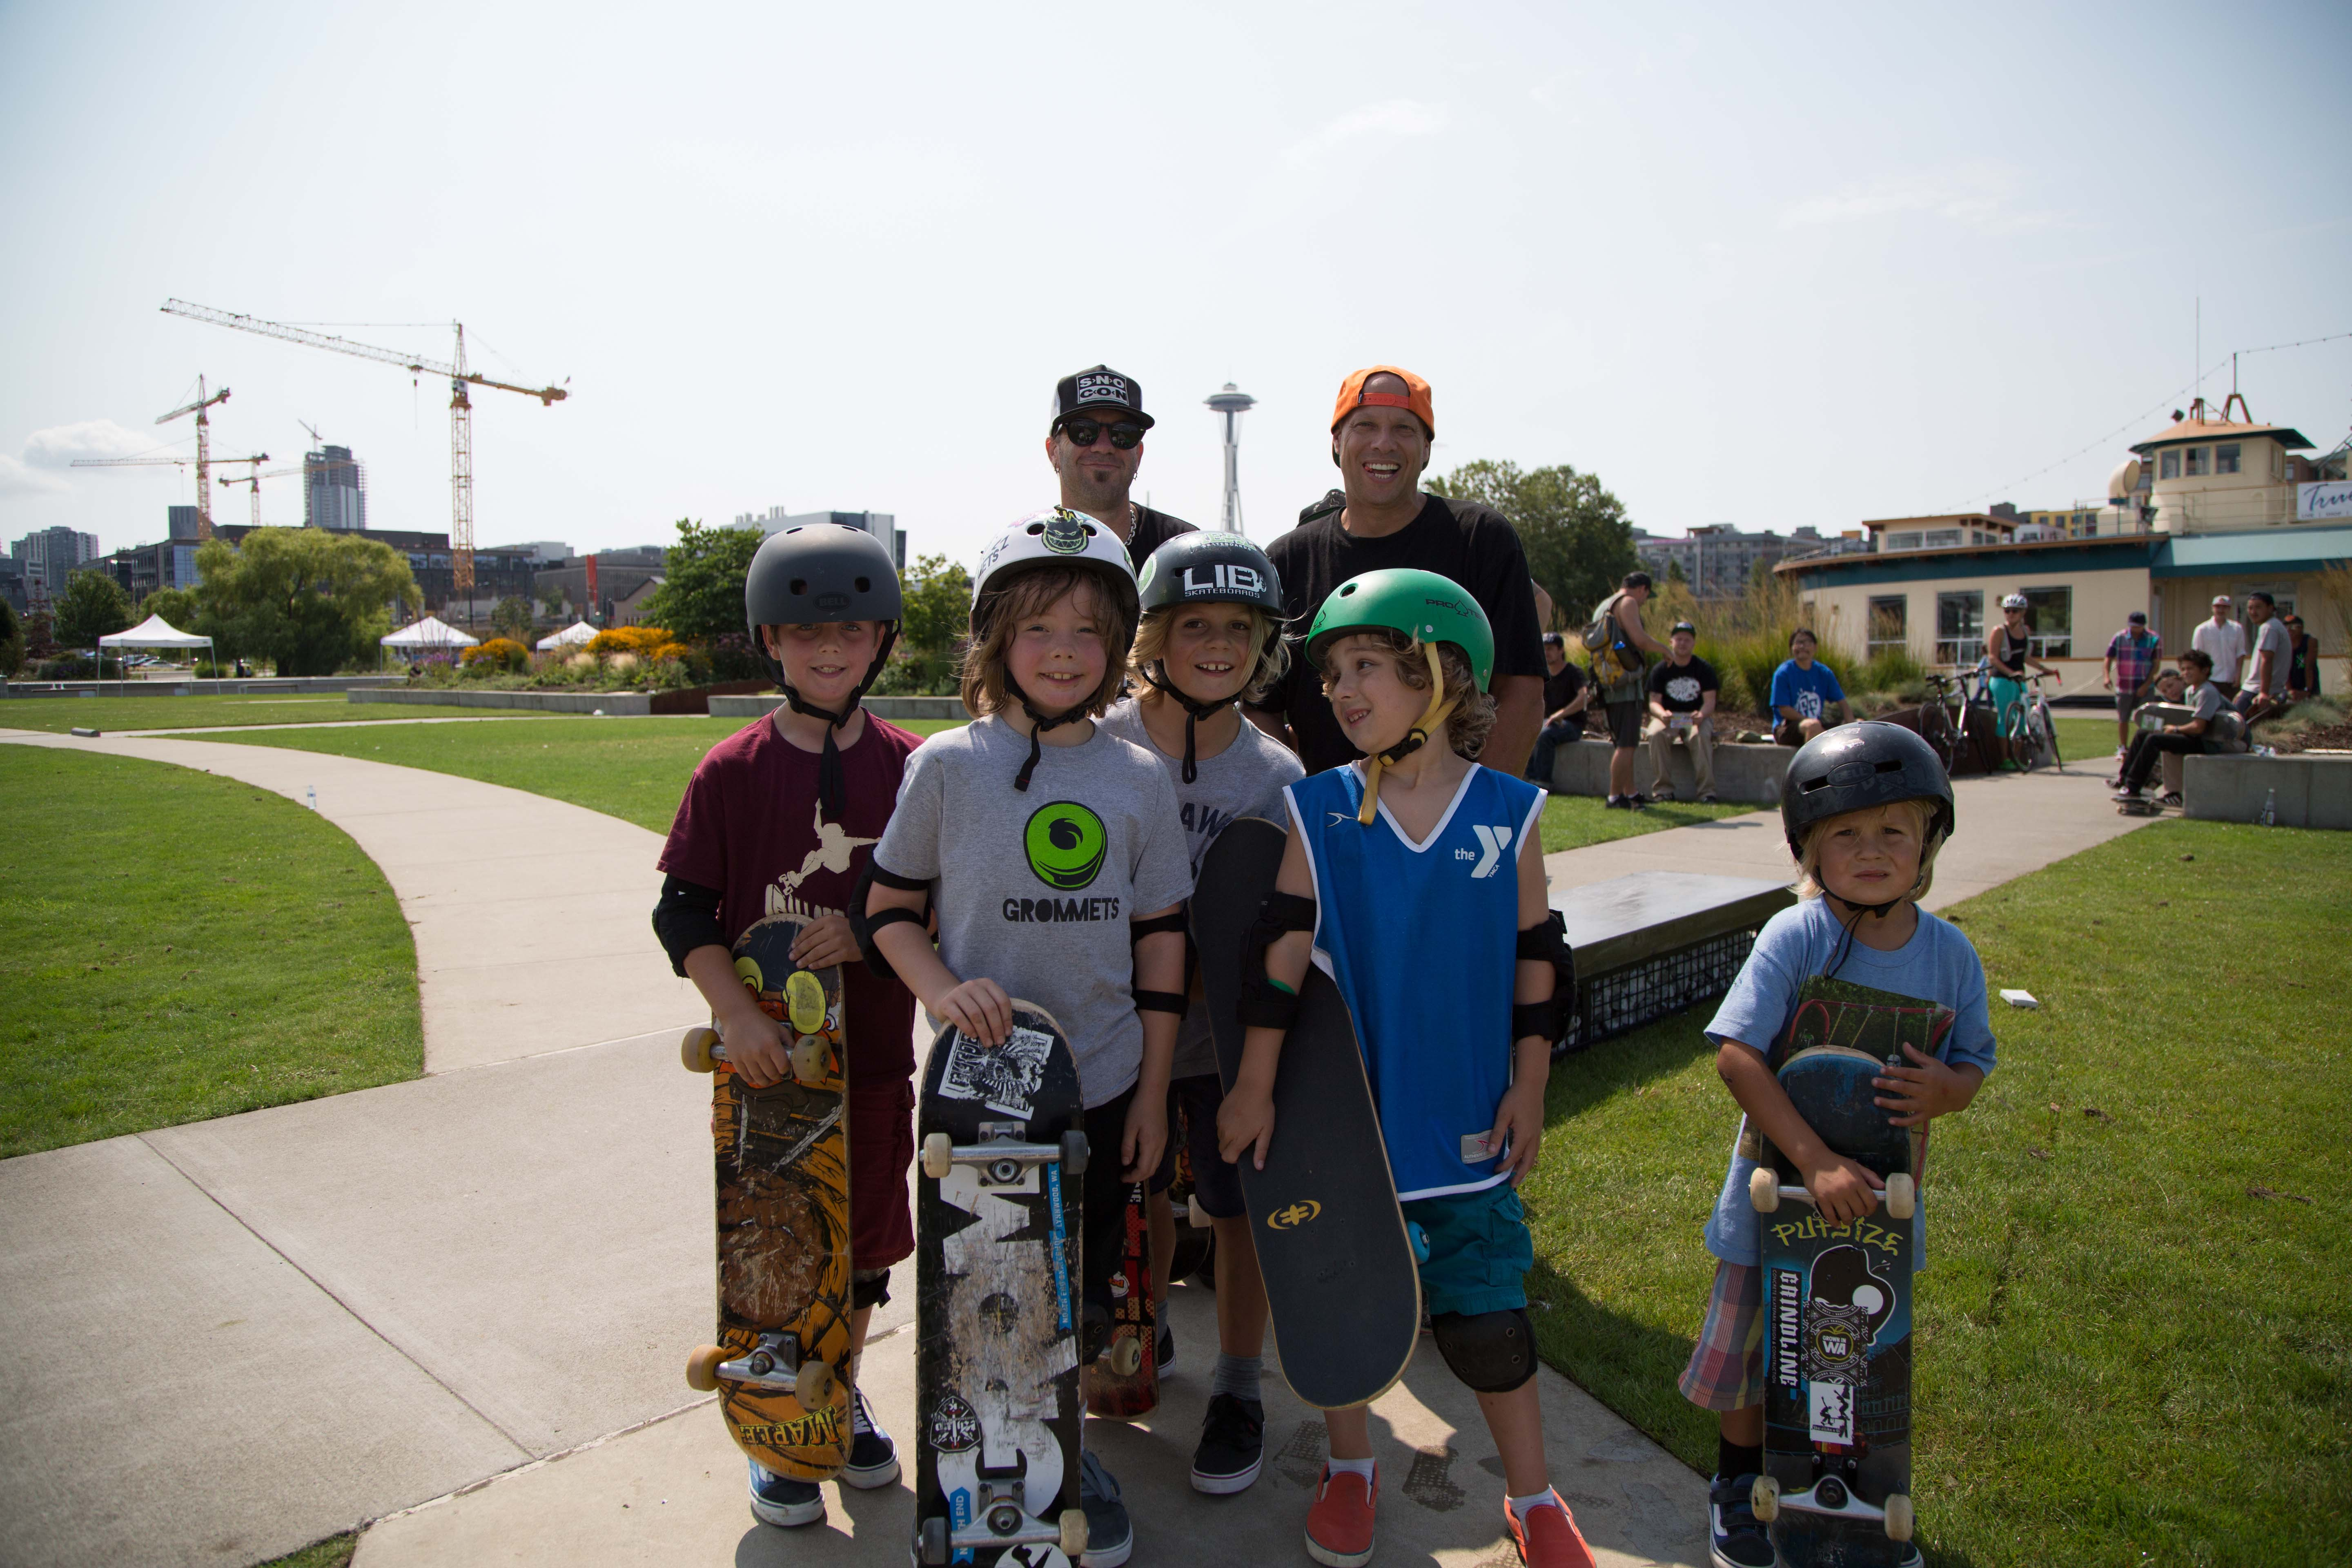 A group of young boys at the free skateboarding clinic at Innoskate in Seattle